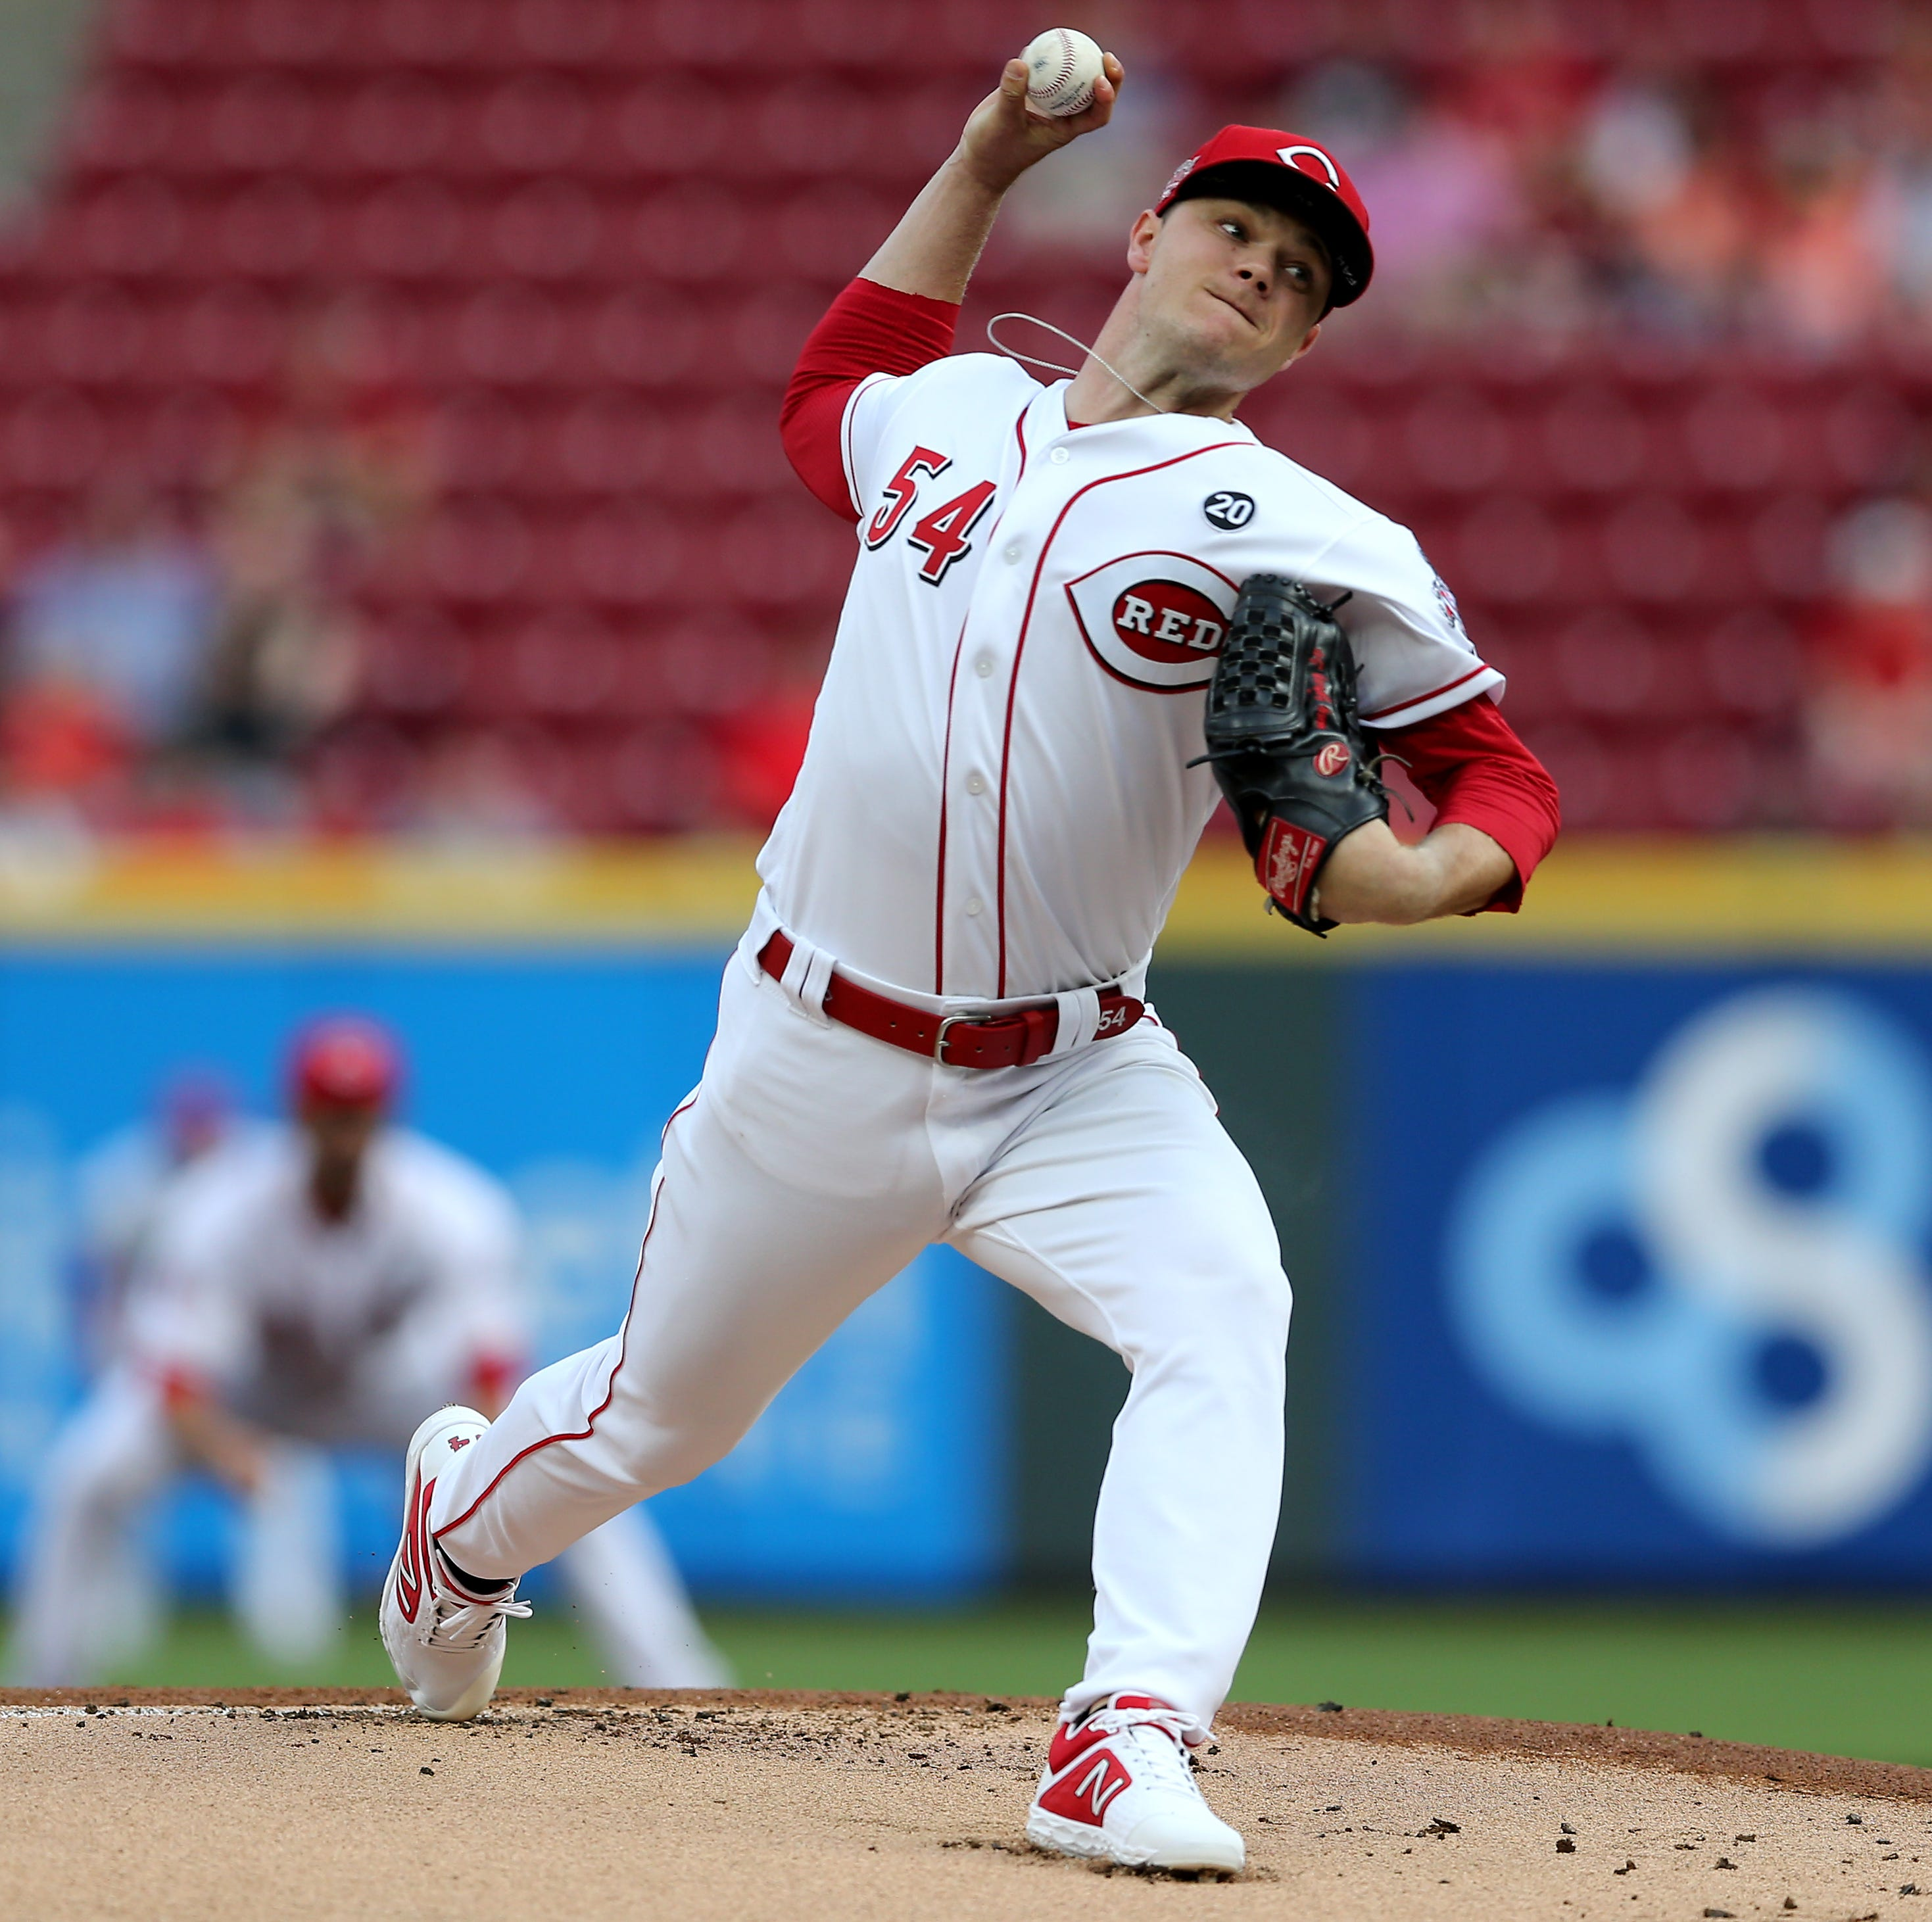 Bats come alive for the Cincinnati Reds in a 7-6 win over the Atlanta Braves